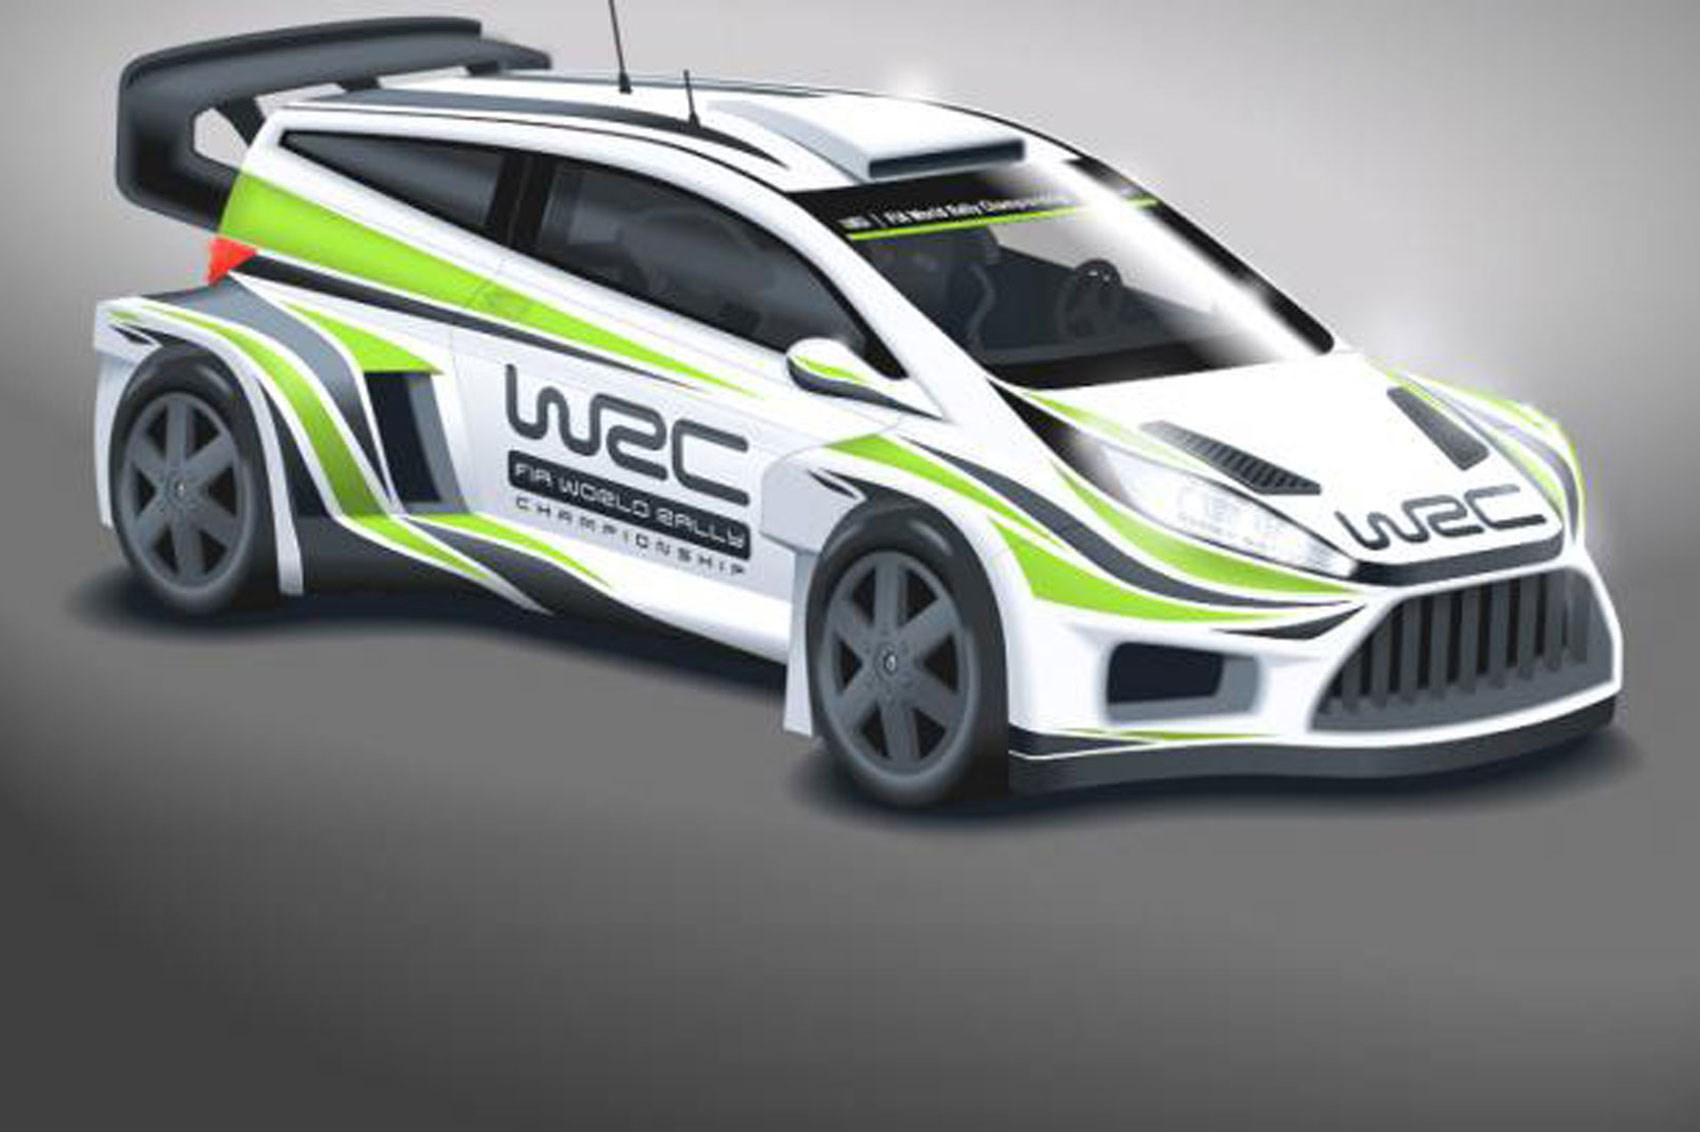 Ultrablogus  Outstanding Wild New Look For Wrc Cars In  By Car Magazine With Exciting Wrc Cars Will Get Wider Bodies Bigger Wings And More Power For  With Beautiful Interior Chevrolet Captiva Also R Class Interior In Addition I Interiors And Vinterior As Well As Kia Interior Additionally Mahindra Reva Interior From Carmagazinecouk With Ultrablogus  Exciting Wild New Look For Wrc Cars In  By Car Magazine With Beautiful Wrc Cars Will Get Wider Bodies Bigger Wings And More Power For  And Outstanding Interior Chevrolet Captiva Also R Class Interior In Addition I Interiors From Carmagazinecouk